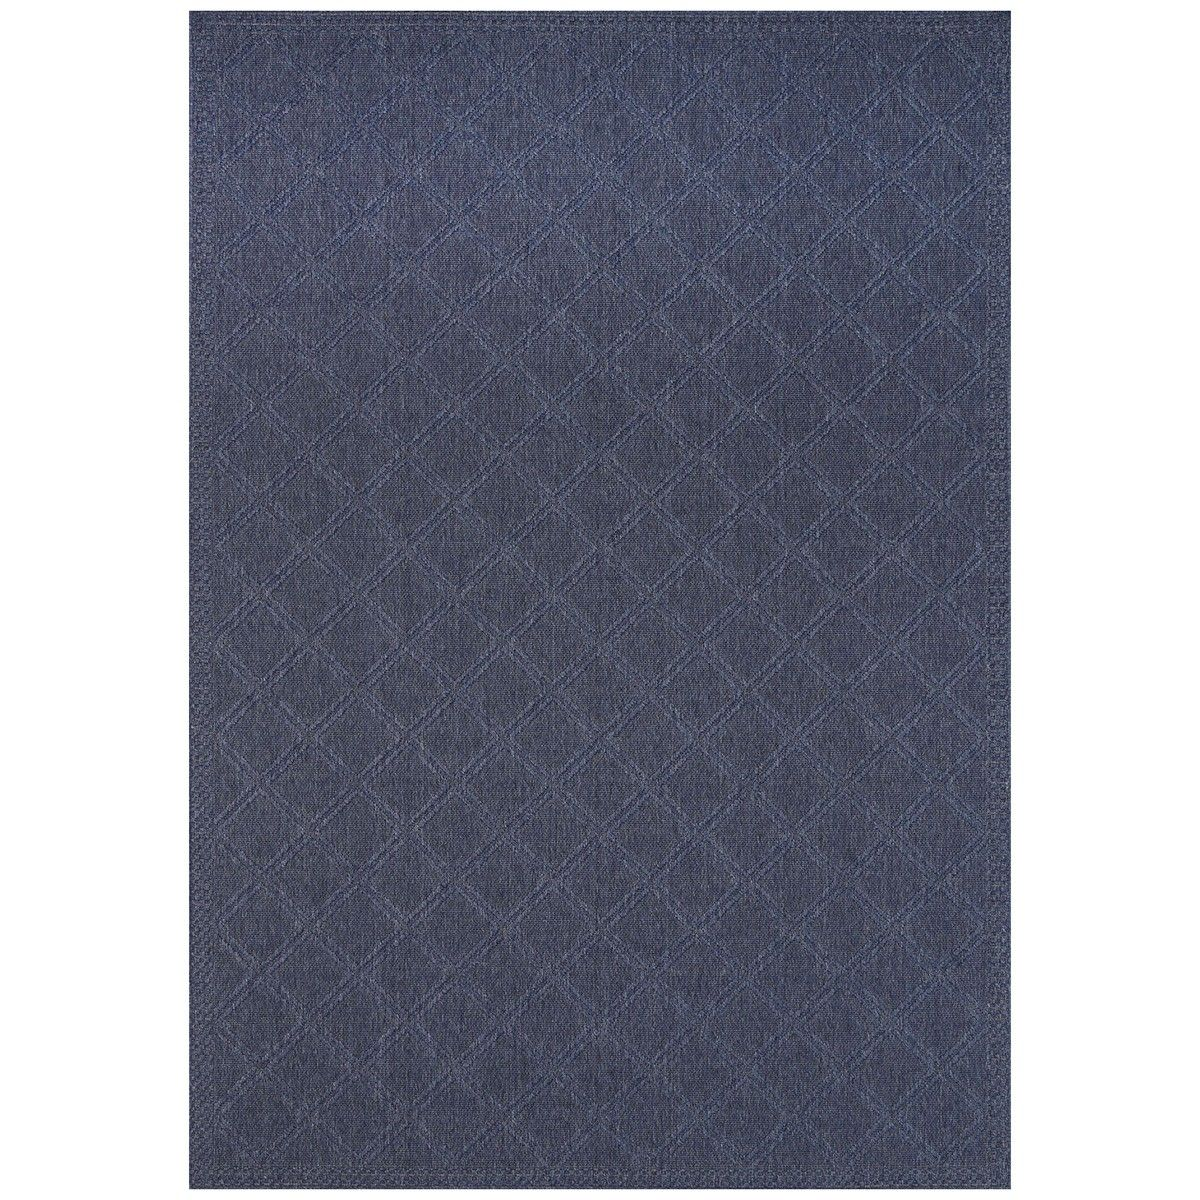 Indoor Outdoor Rug 160x230cm Blue